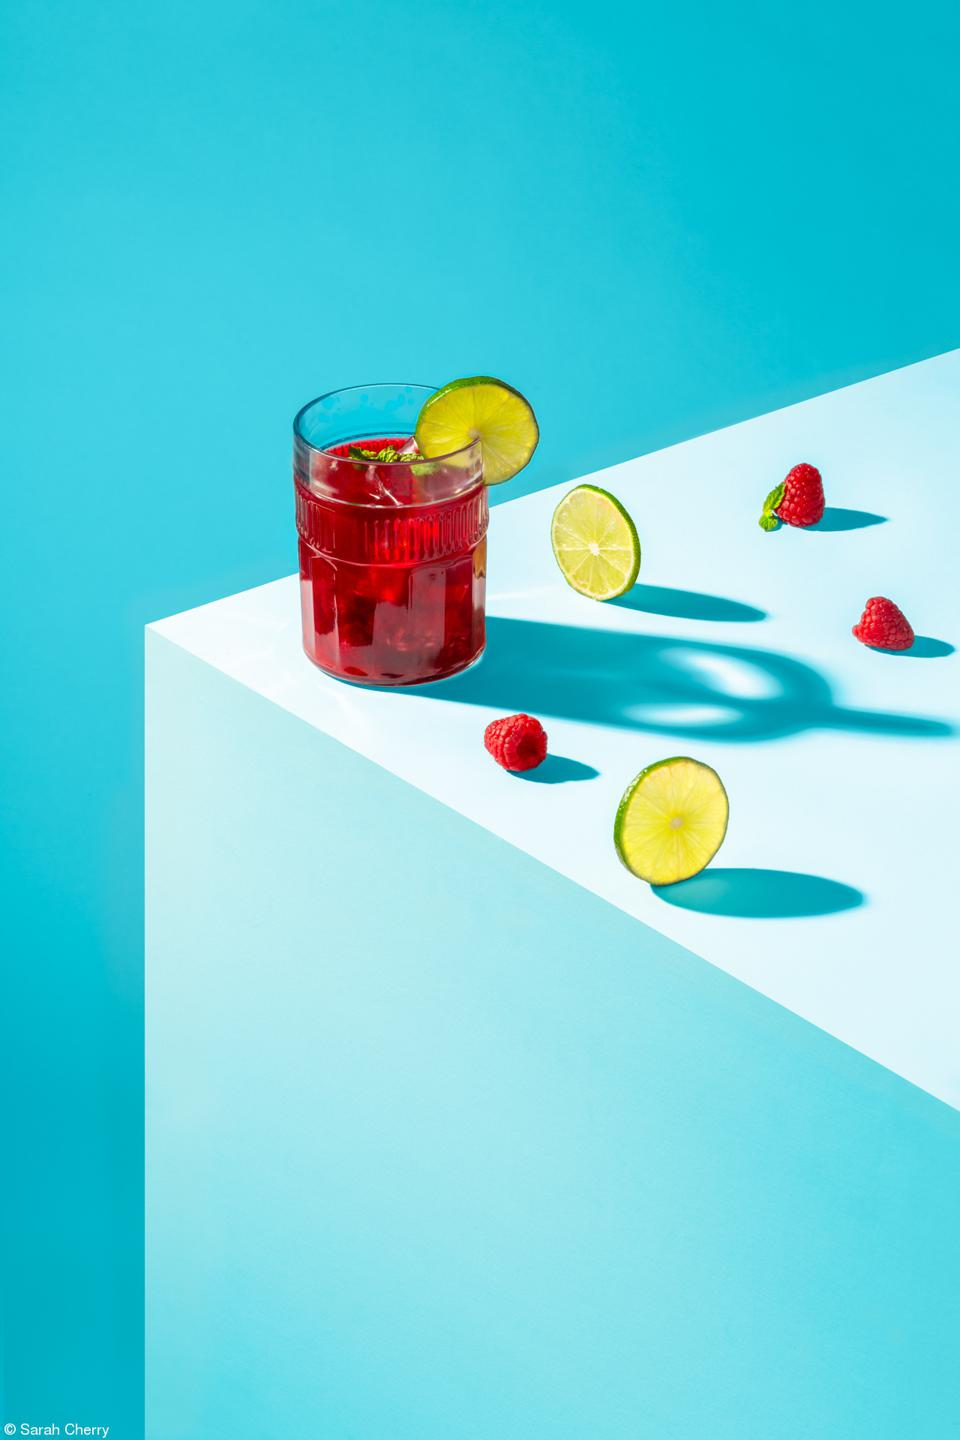 Raspberries and Limes in a colorful, conceptual photo.